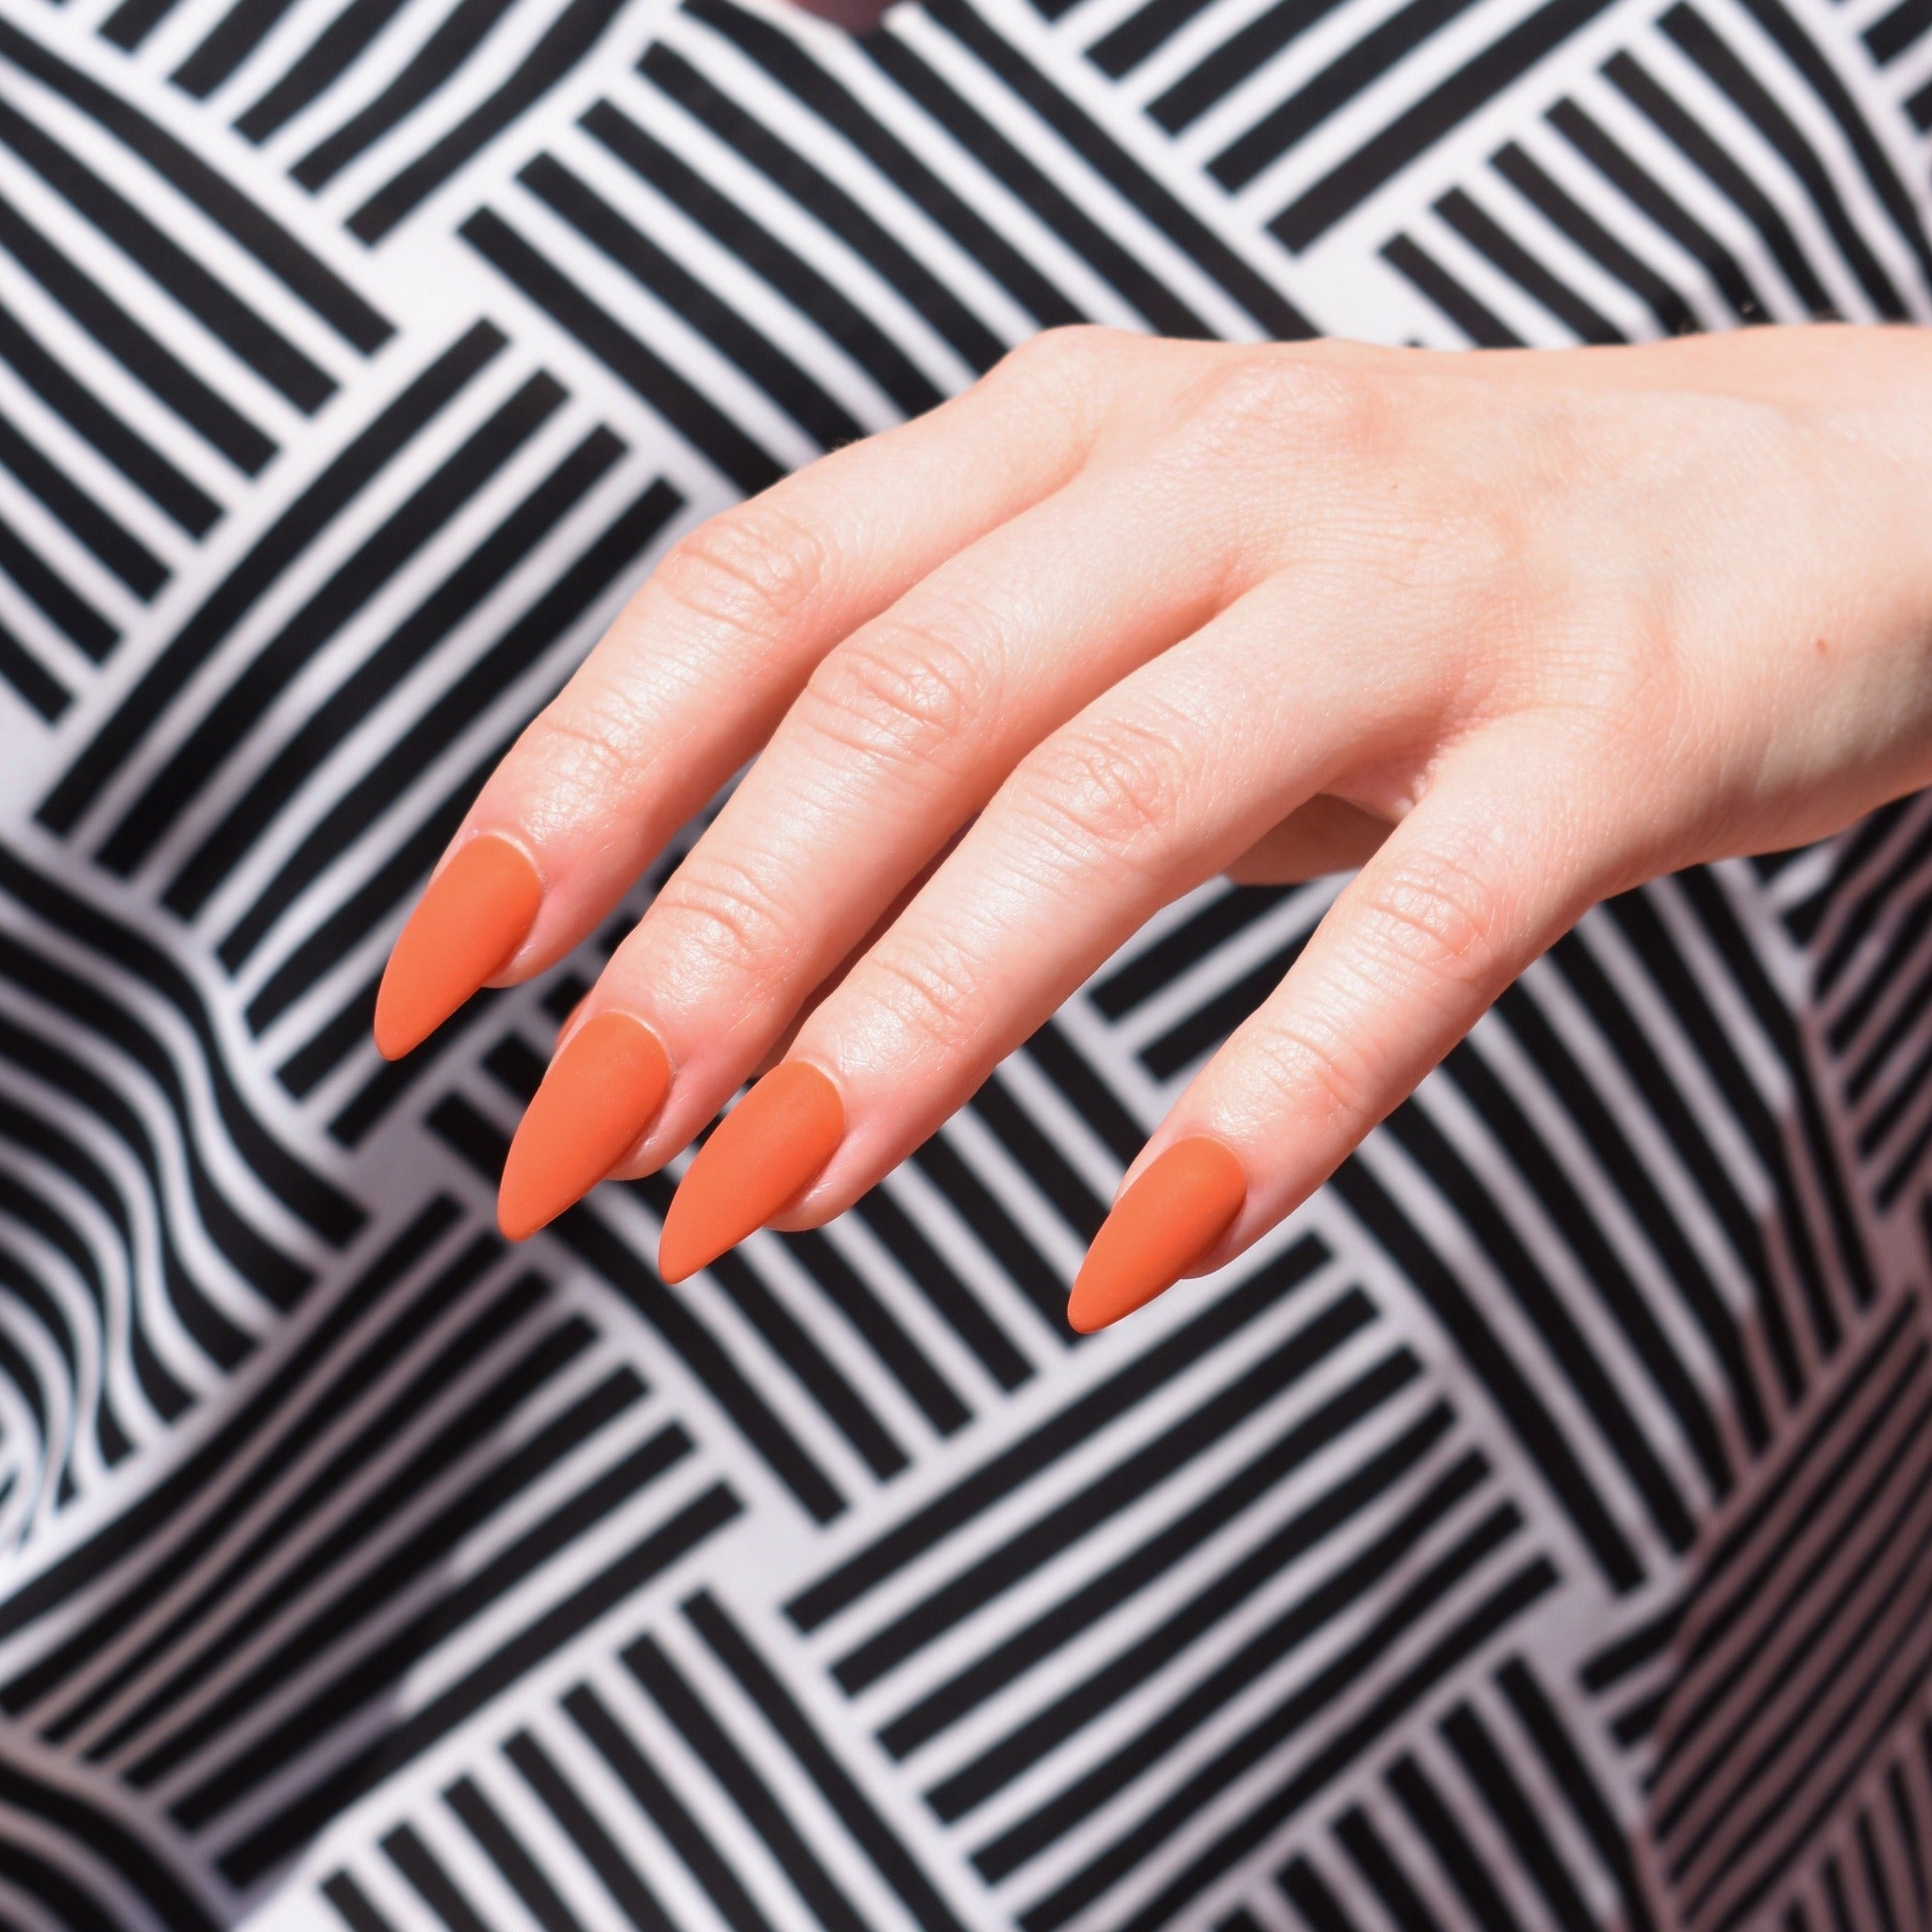 Hand-painted gel polish press-ons in a burnt orange almond shaped matte finish. One hand is pictured and the model is wearing a black and white geometric patterned blouse.